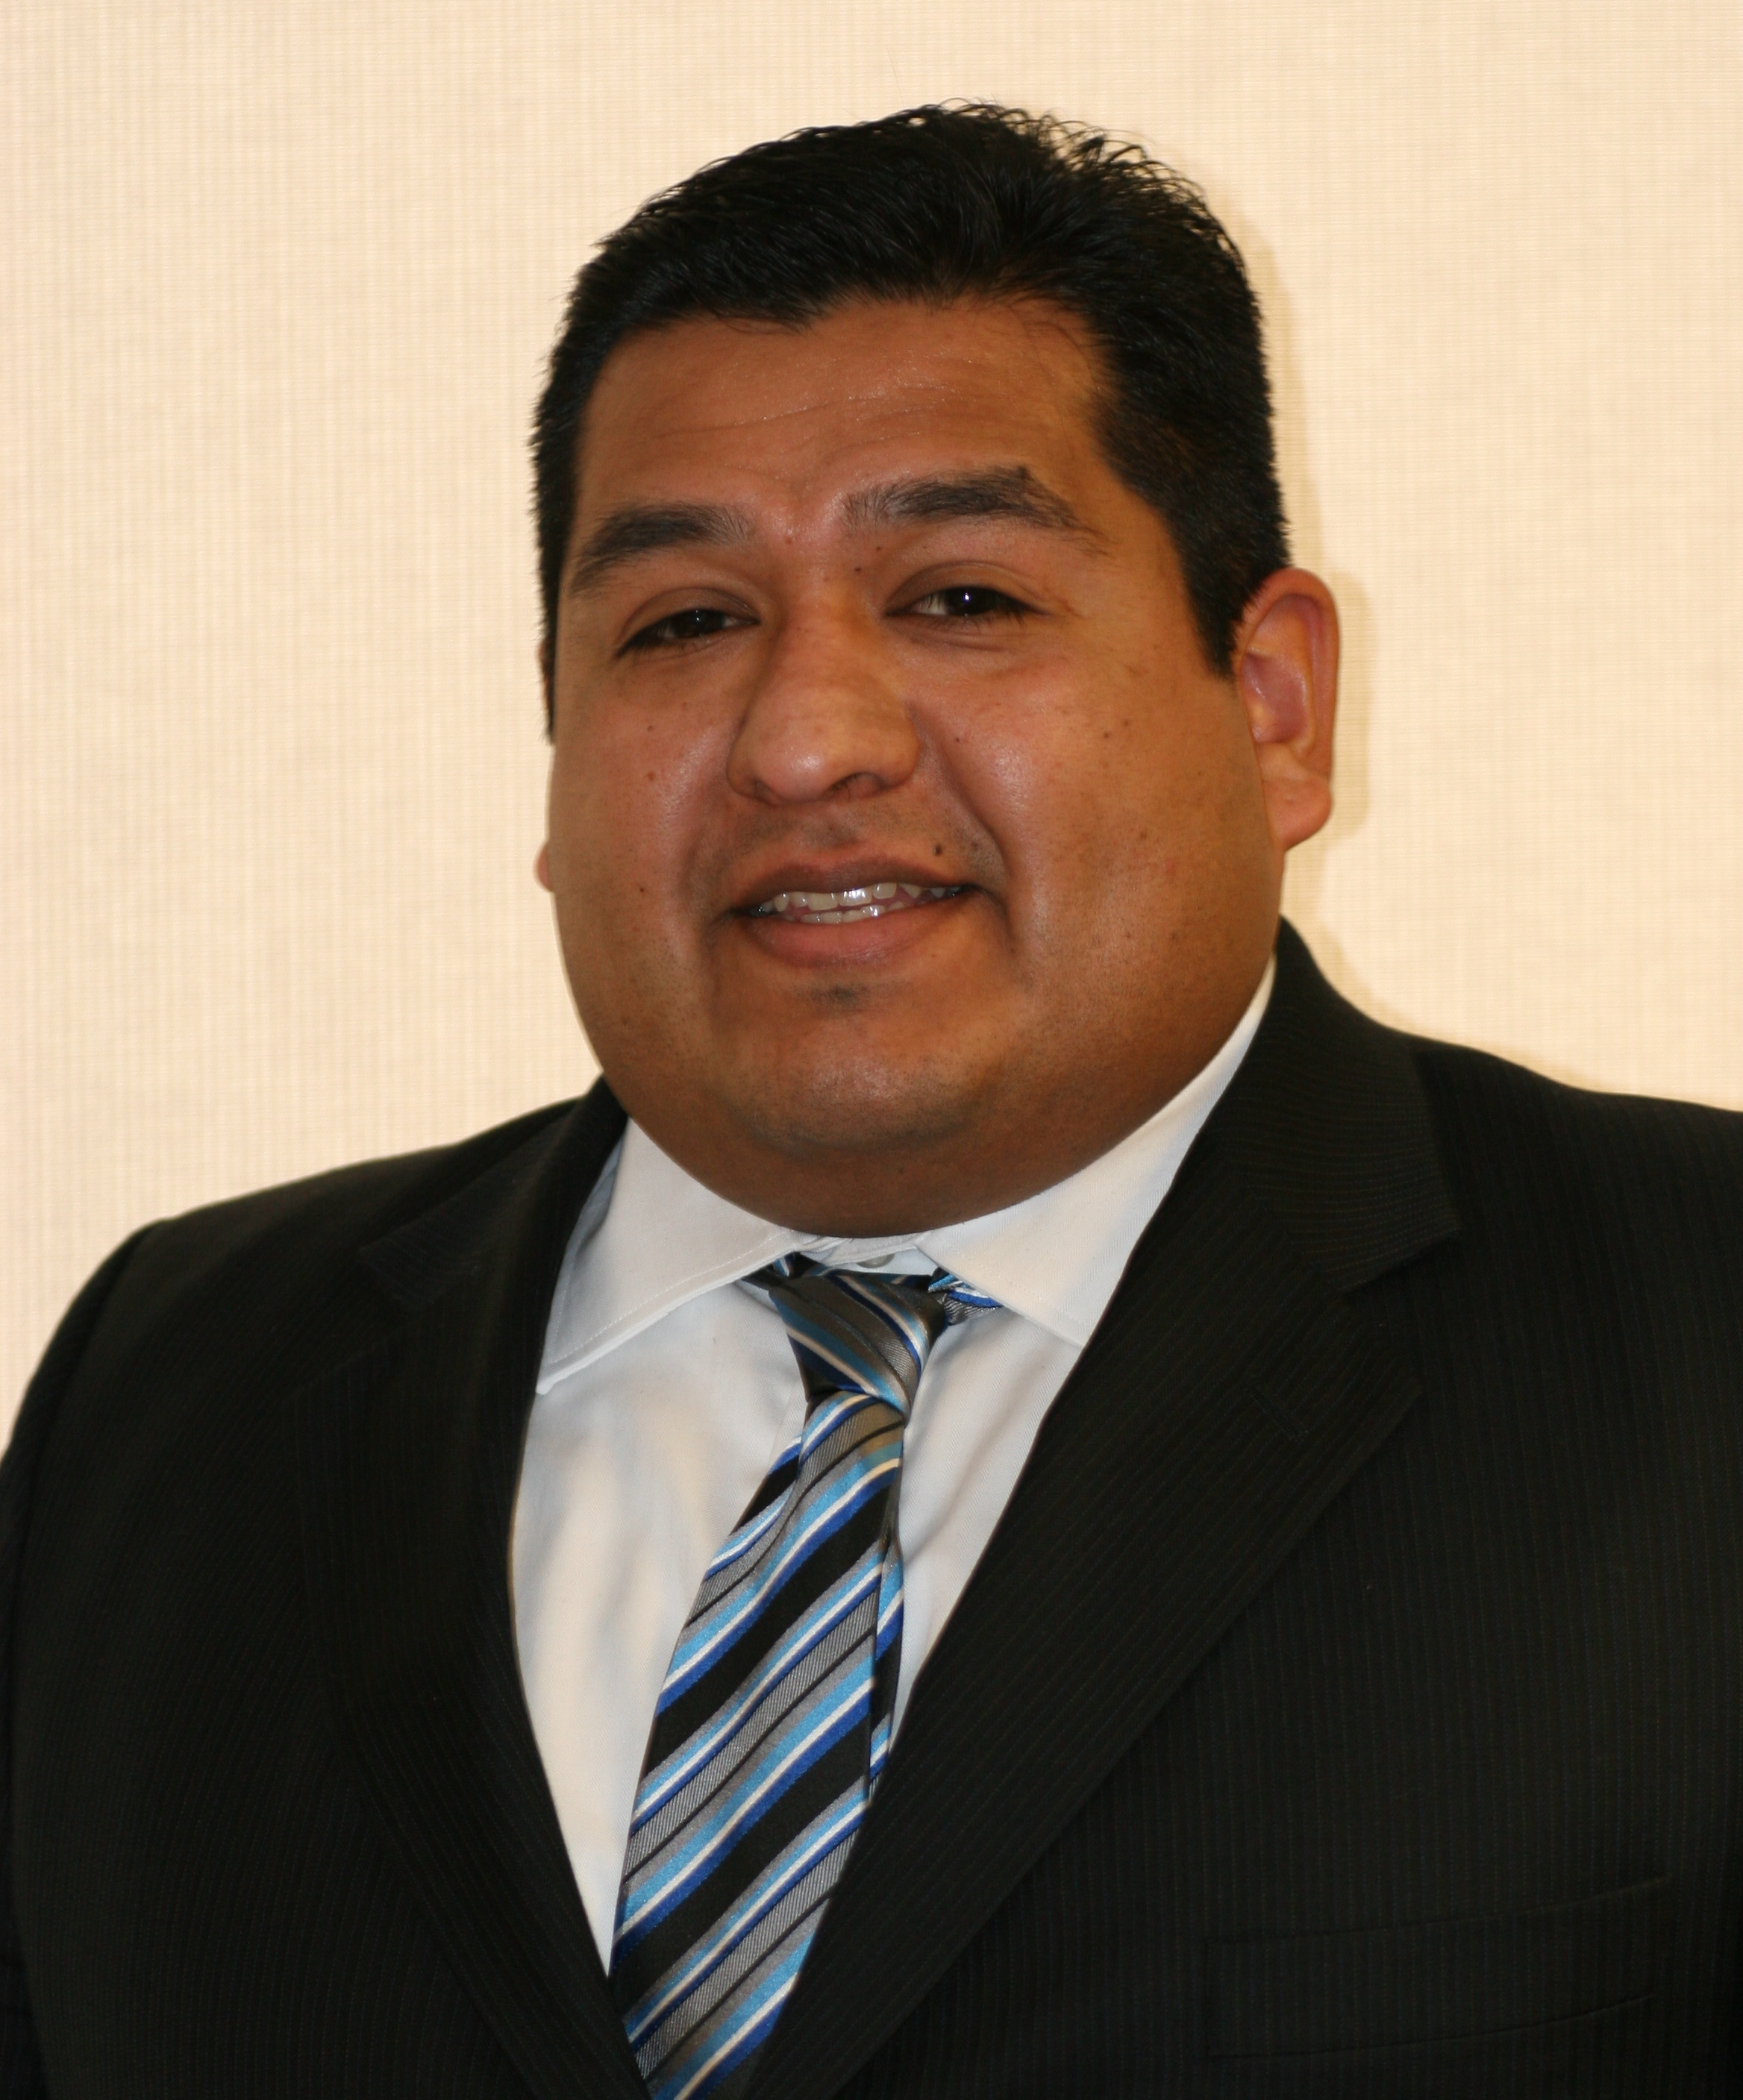 Karlos Ramirez is the executive director of the Hispanic Chamber of Commerce of St. Louis.